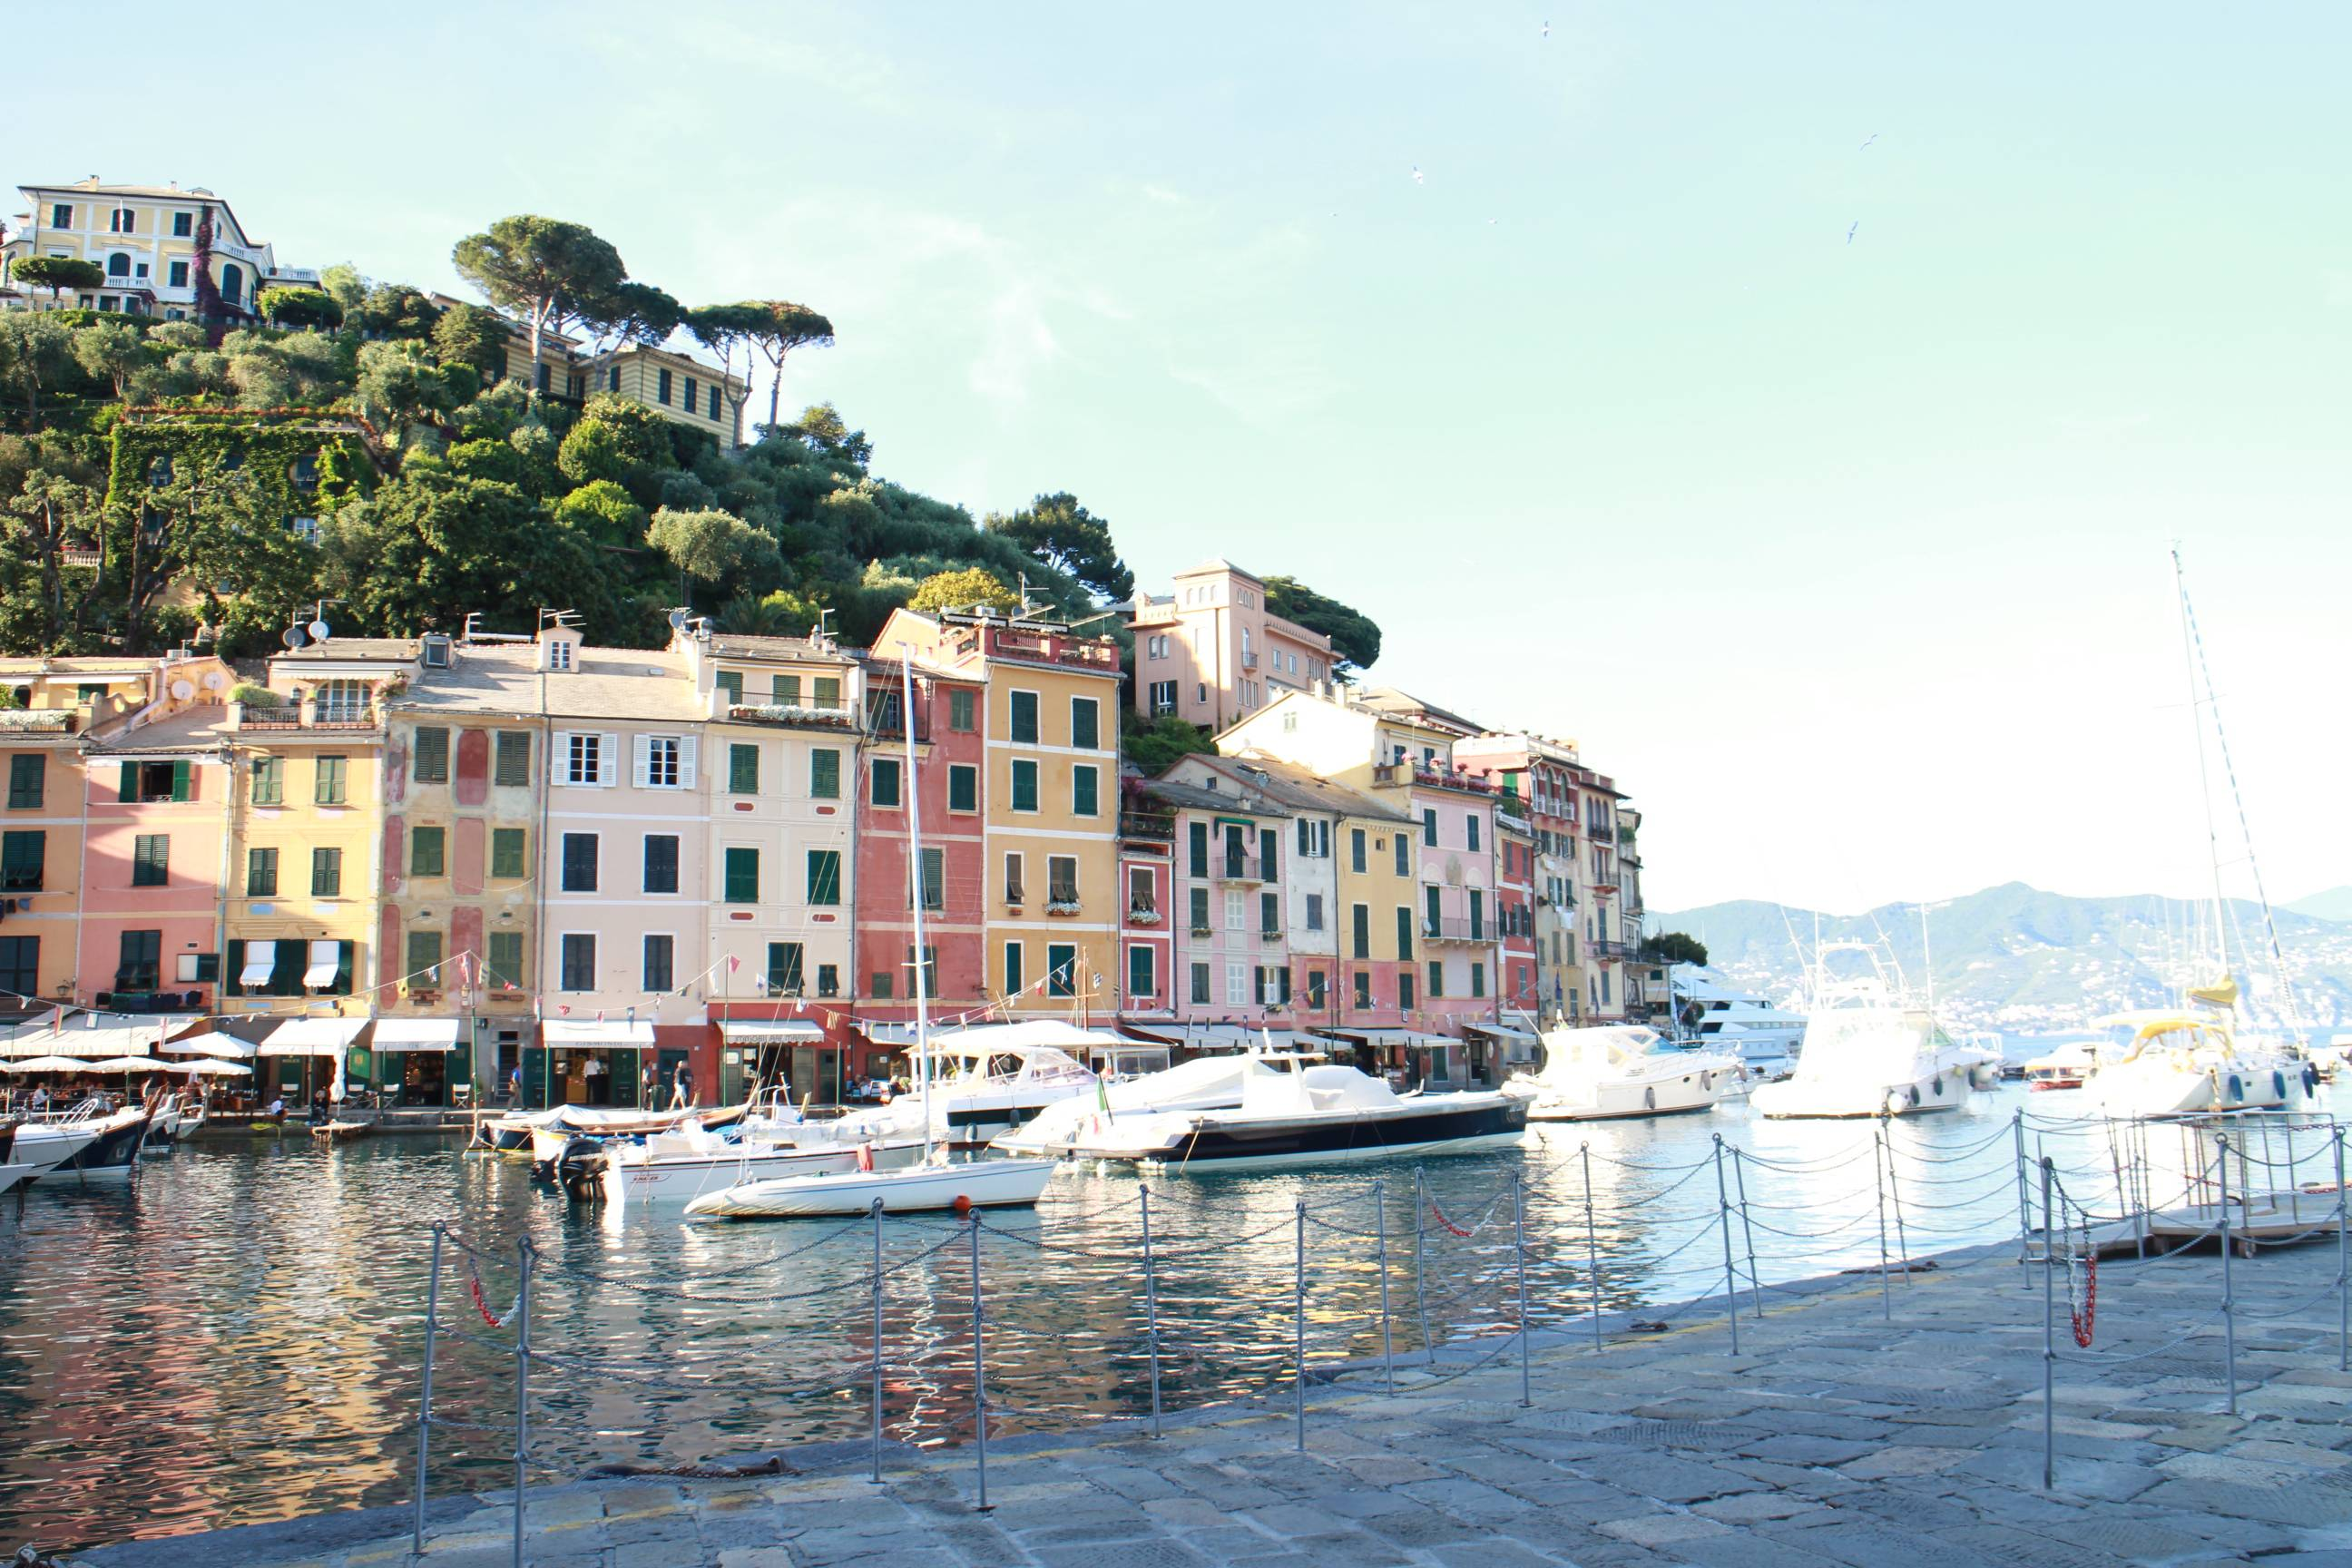 Photo 3: Portofino, le Saint-Tropez Italien